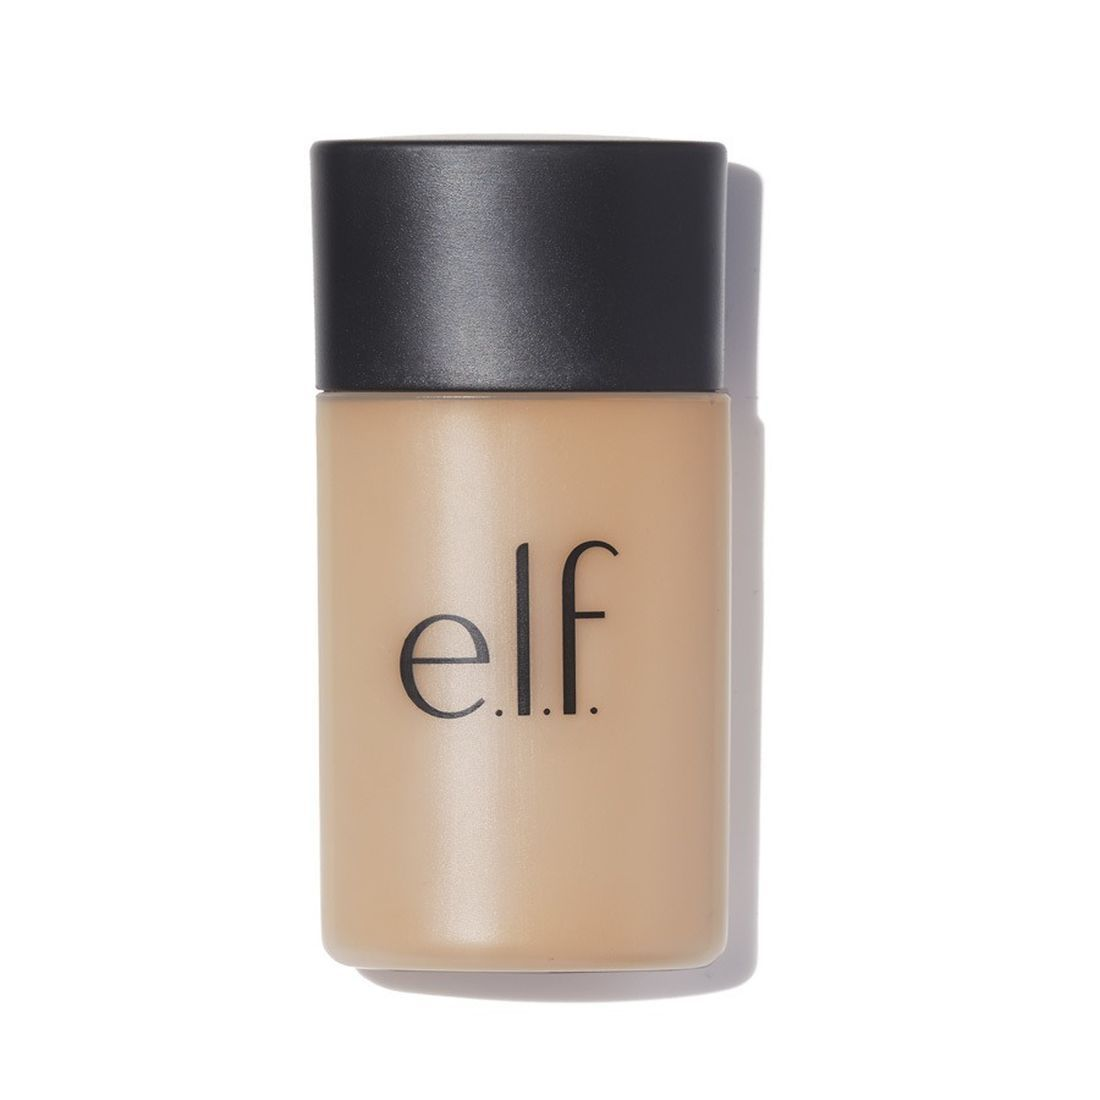 17 Best Foundations For Acne Prone Skin Drugstore Makeup For Acne